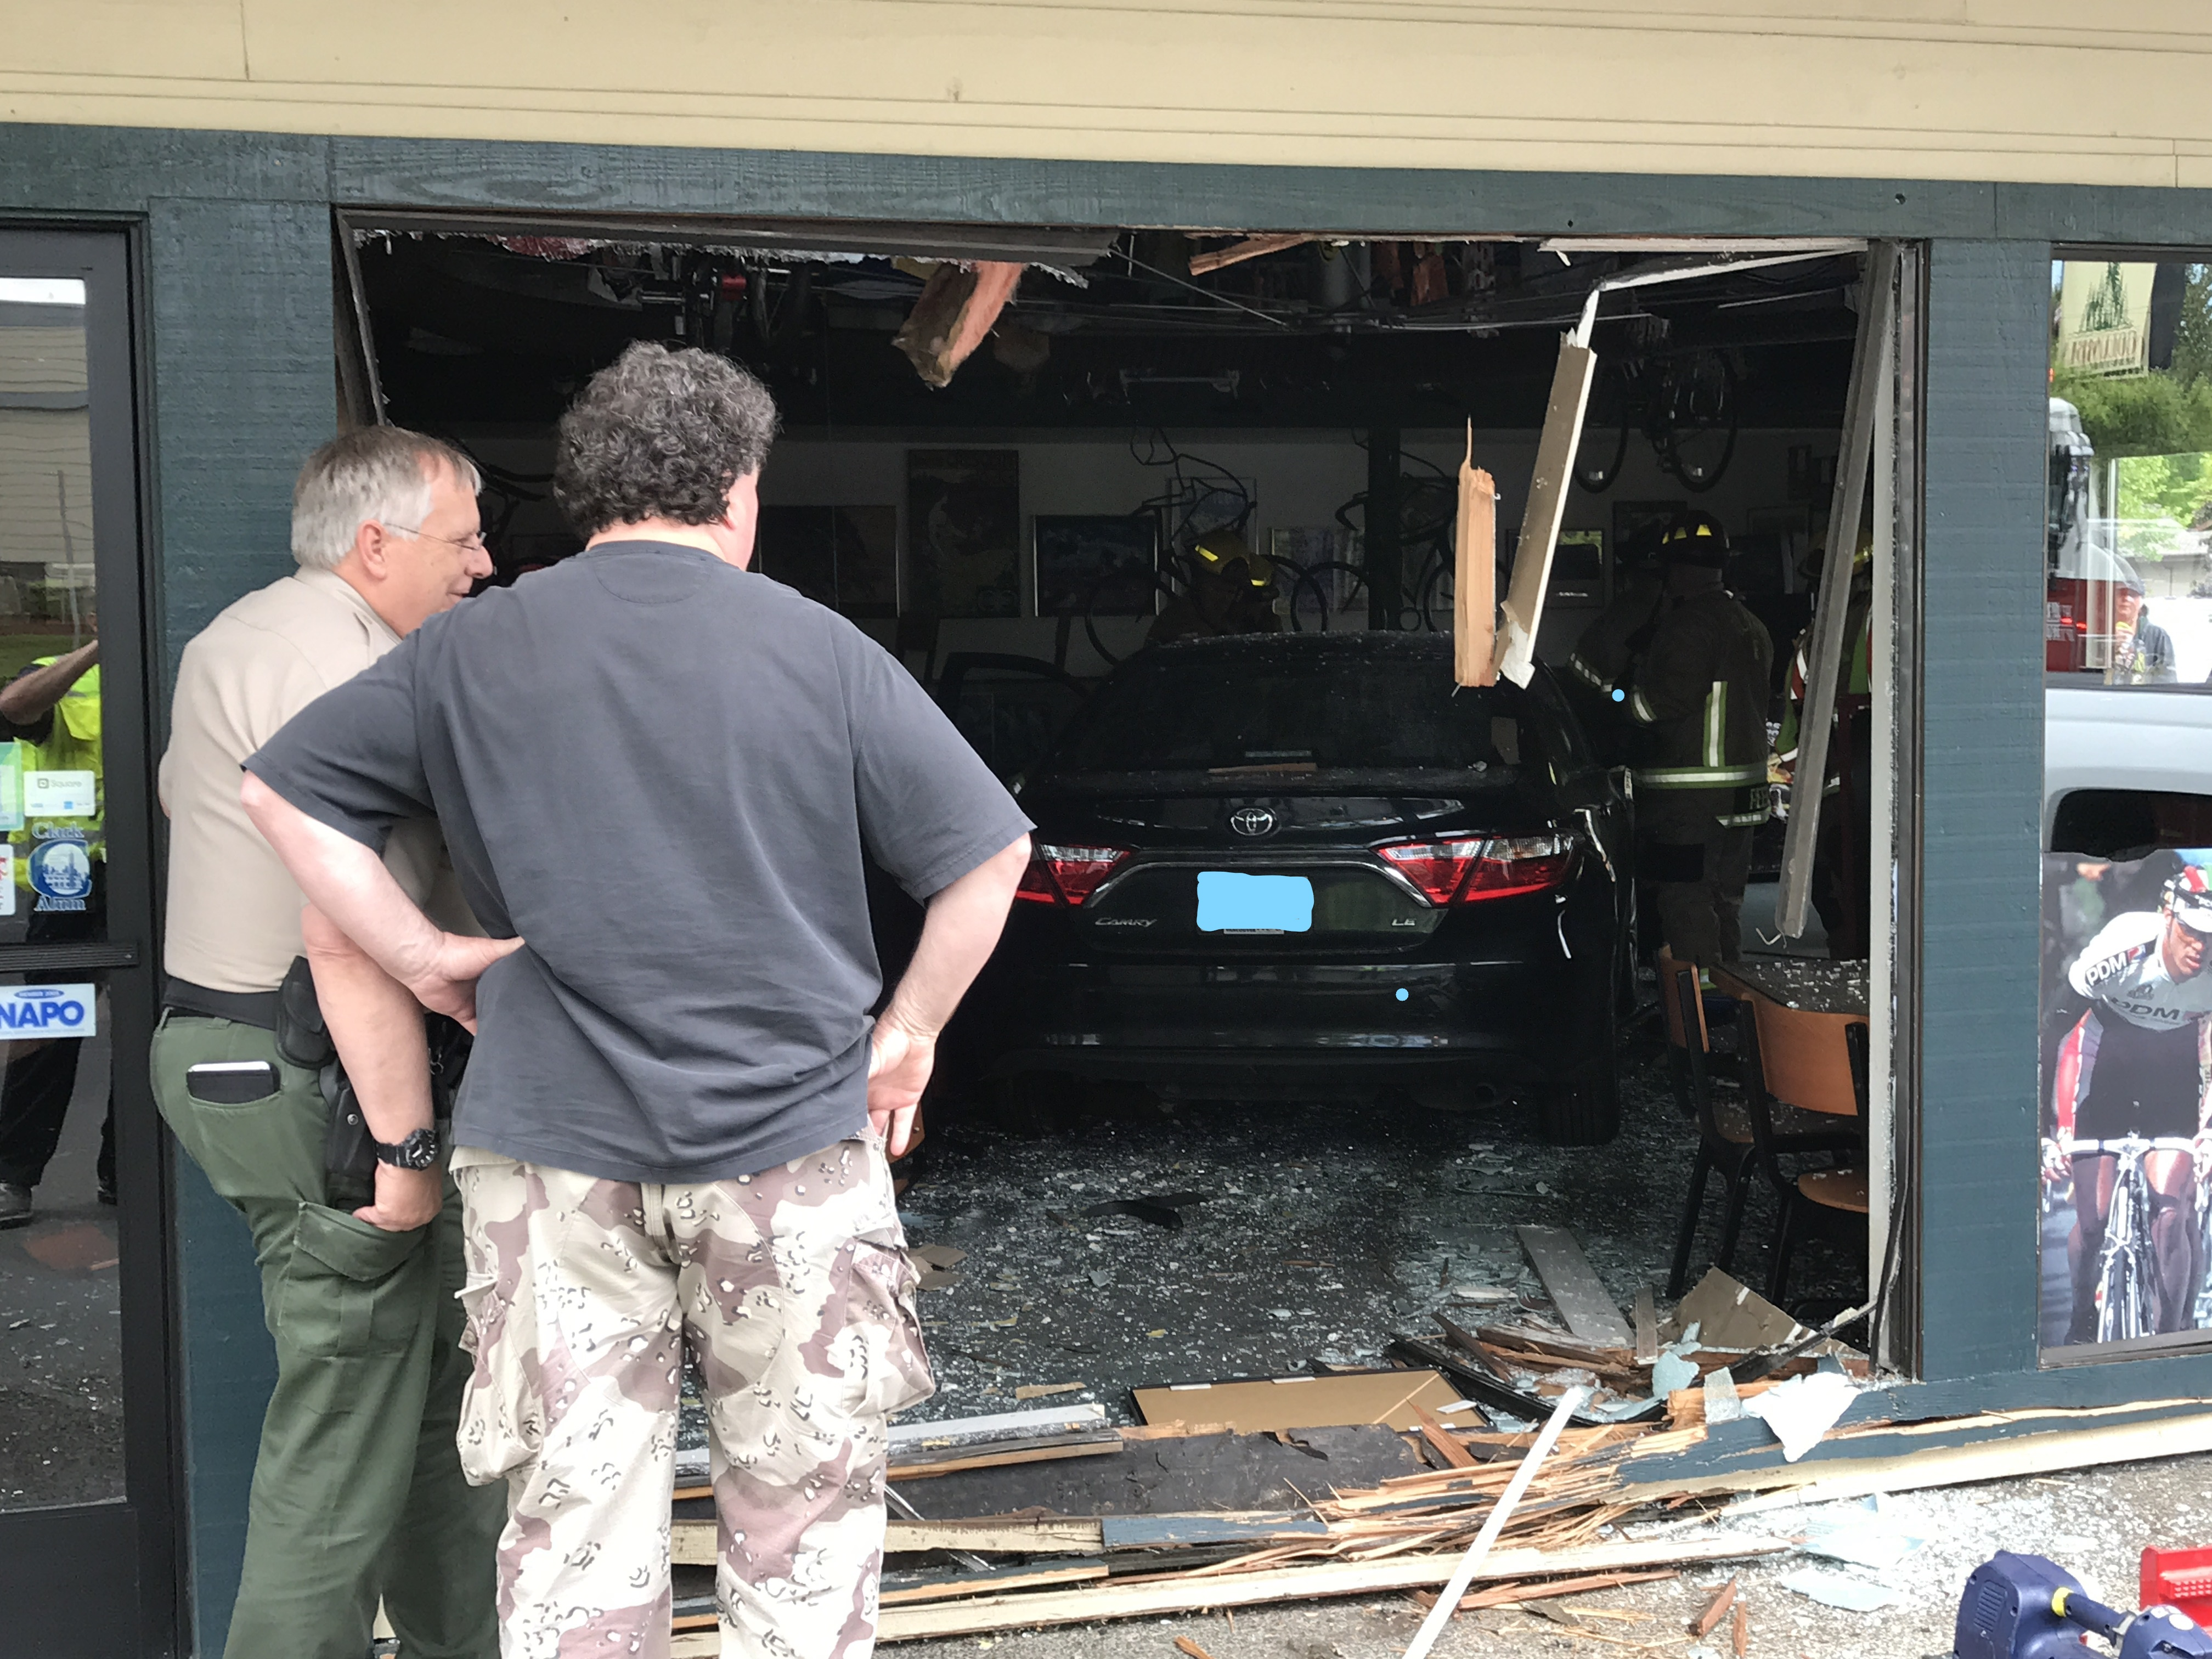 Driver crashes into Hazel Dell pizza shop - Clark County Fire District image - 4.jpg